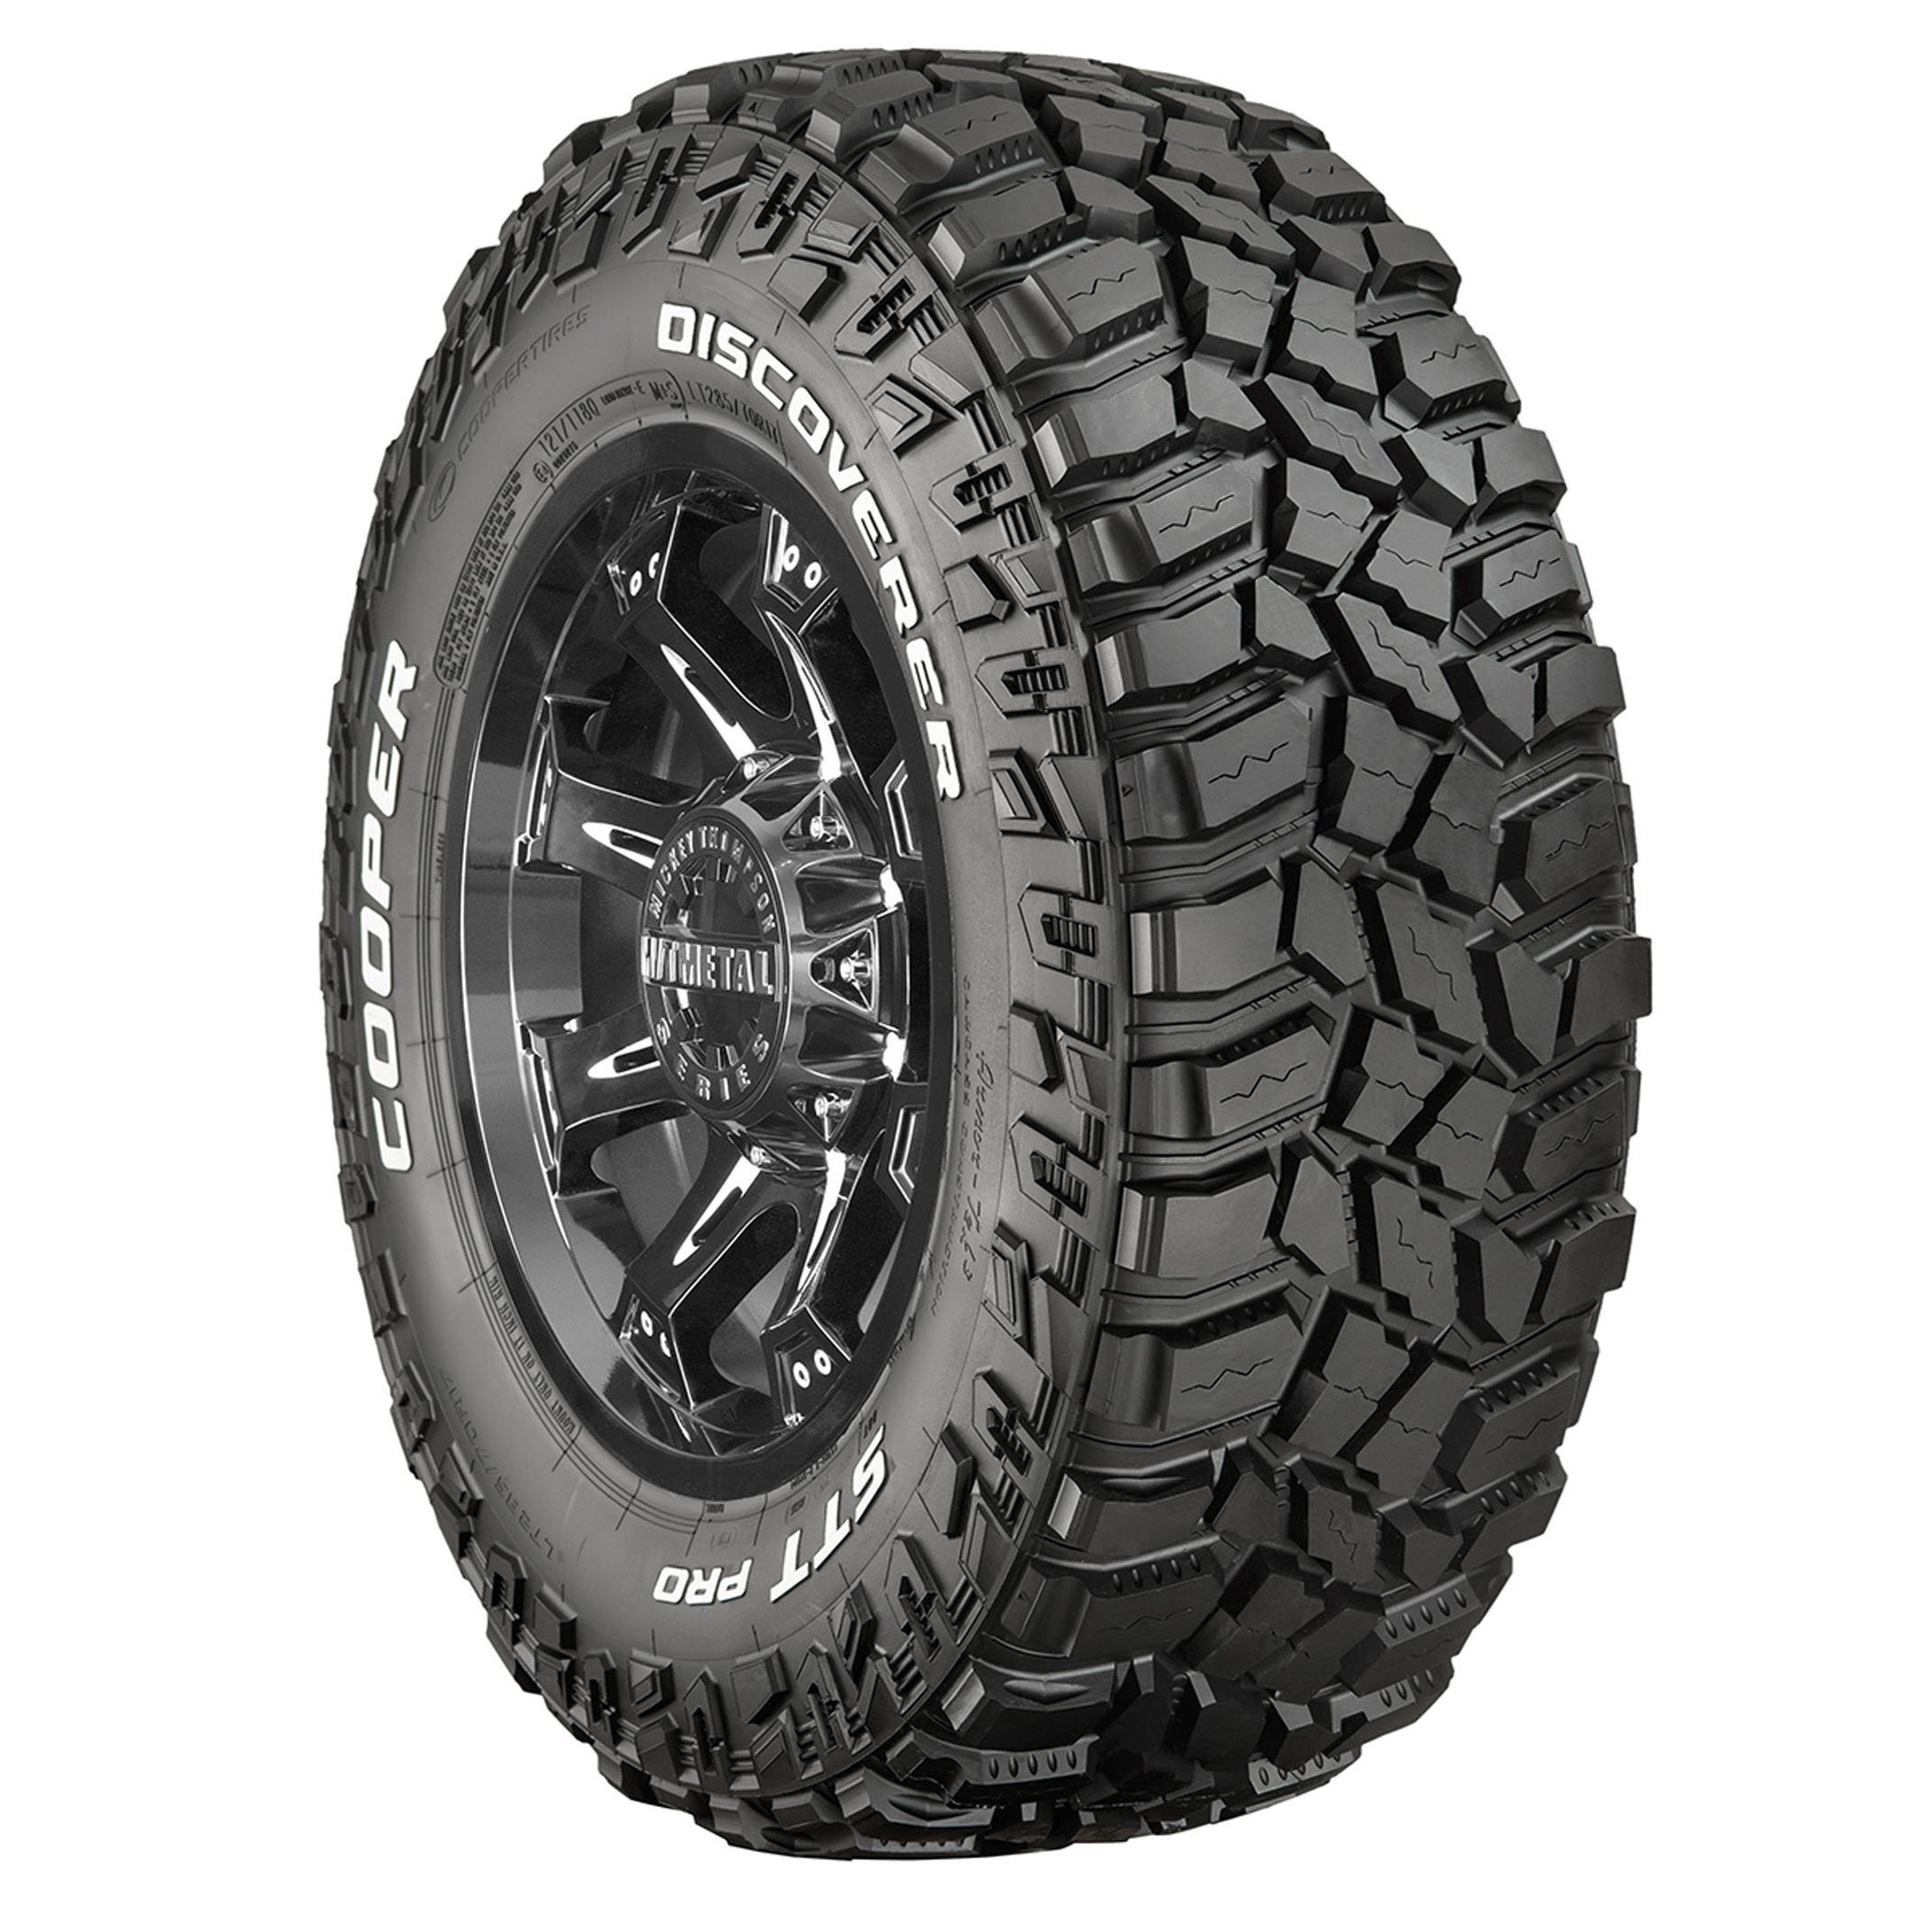 COOPER Discoverer STT Pro Off Road Tire - 31X10.50R15 LRC...